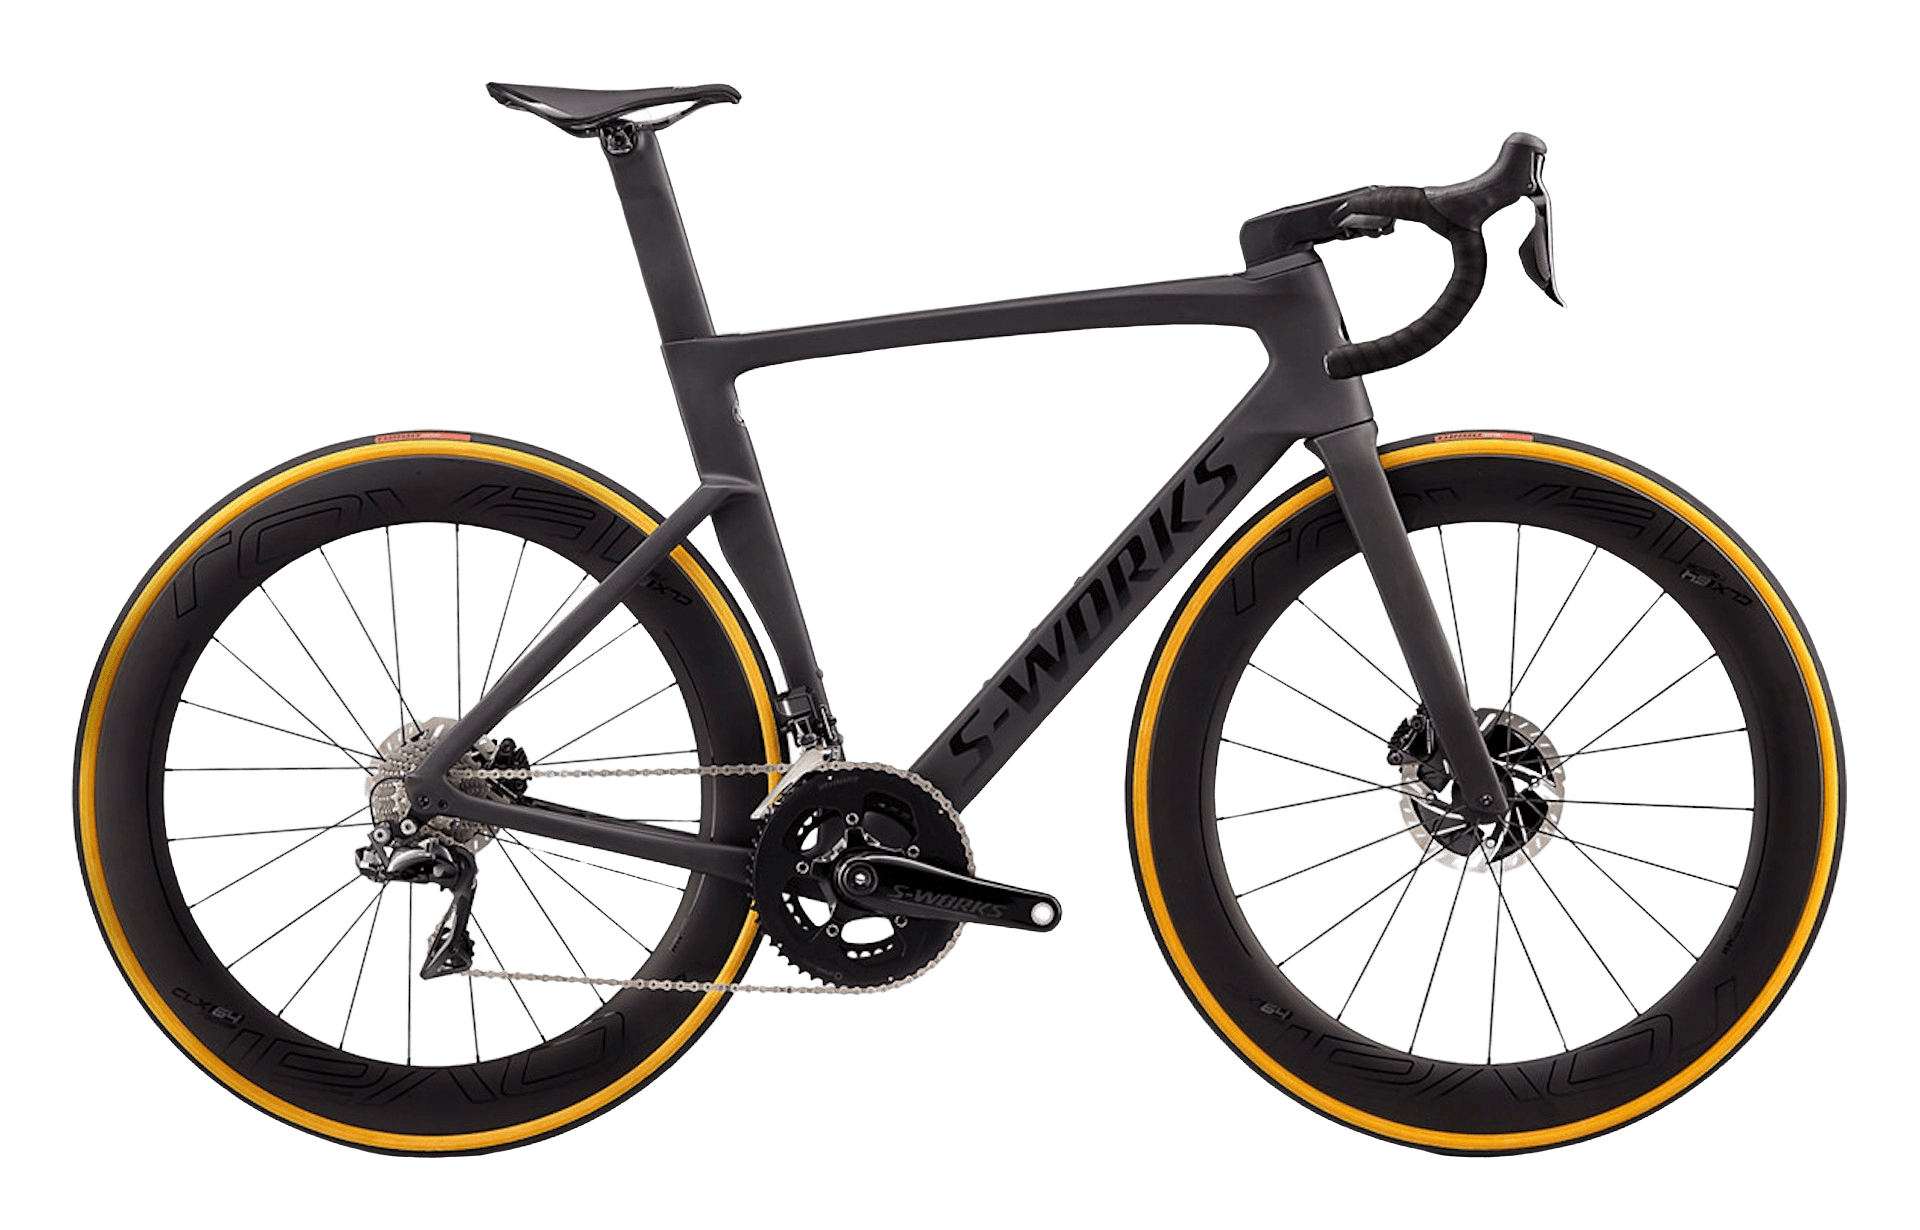 specialized s-works venge racefiets